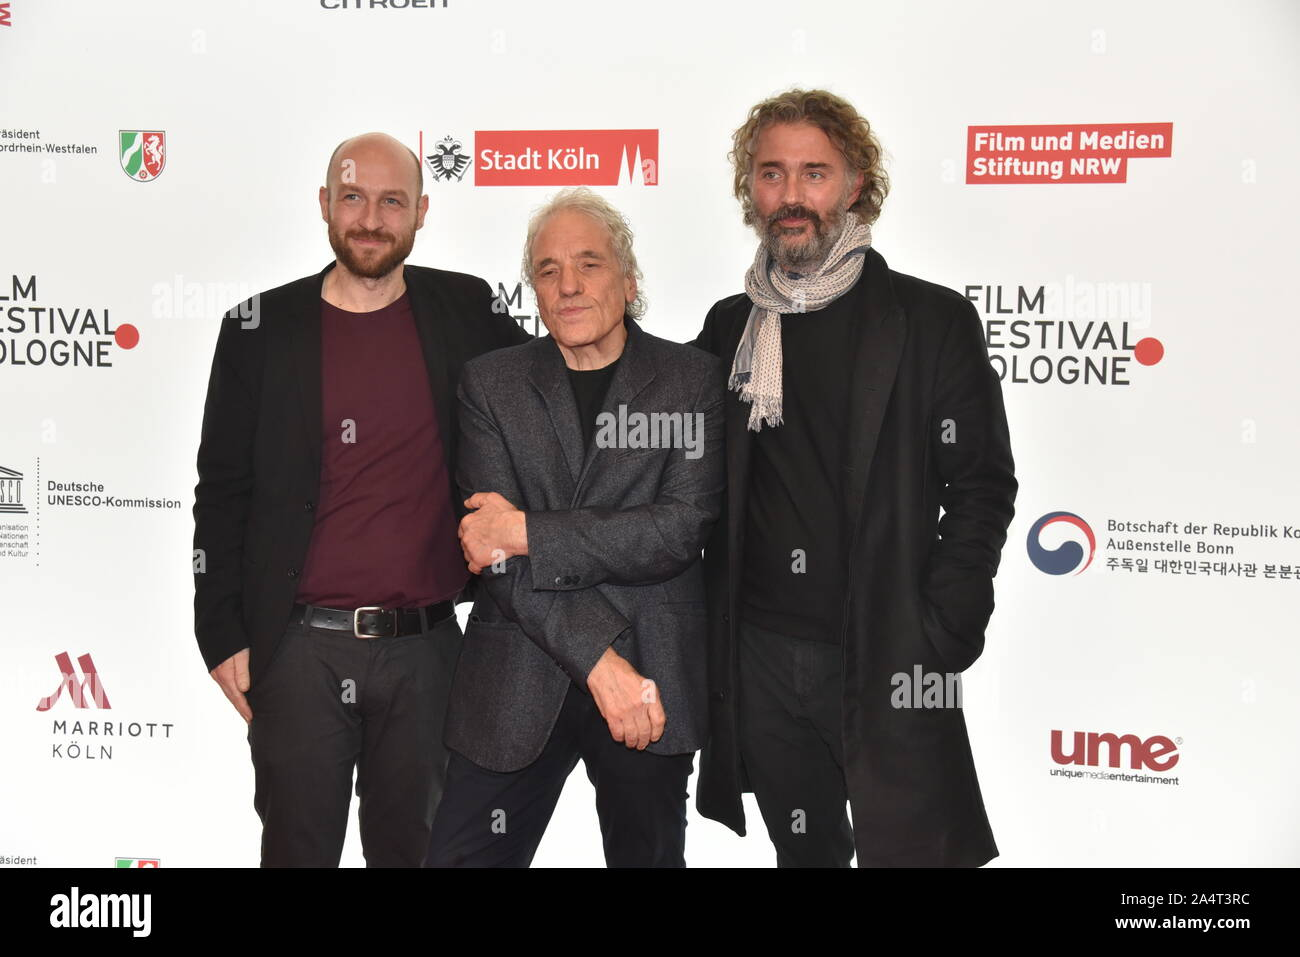 """Cologne, Germany. 15th Oct, 2019. Program director Johannes Hensen, l-r, the US American director Abel Ferrara and film producer Michael Weber come to screen the film """" Tommaso """" at the Film Festival Cologne, international film and television festival. Credit: Horst Galuschka/dpa/Alamy Live News Stock Photo"""